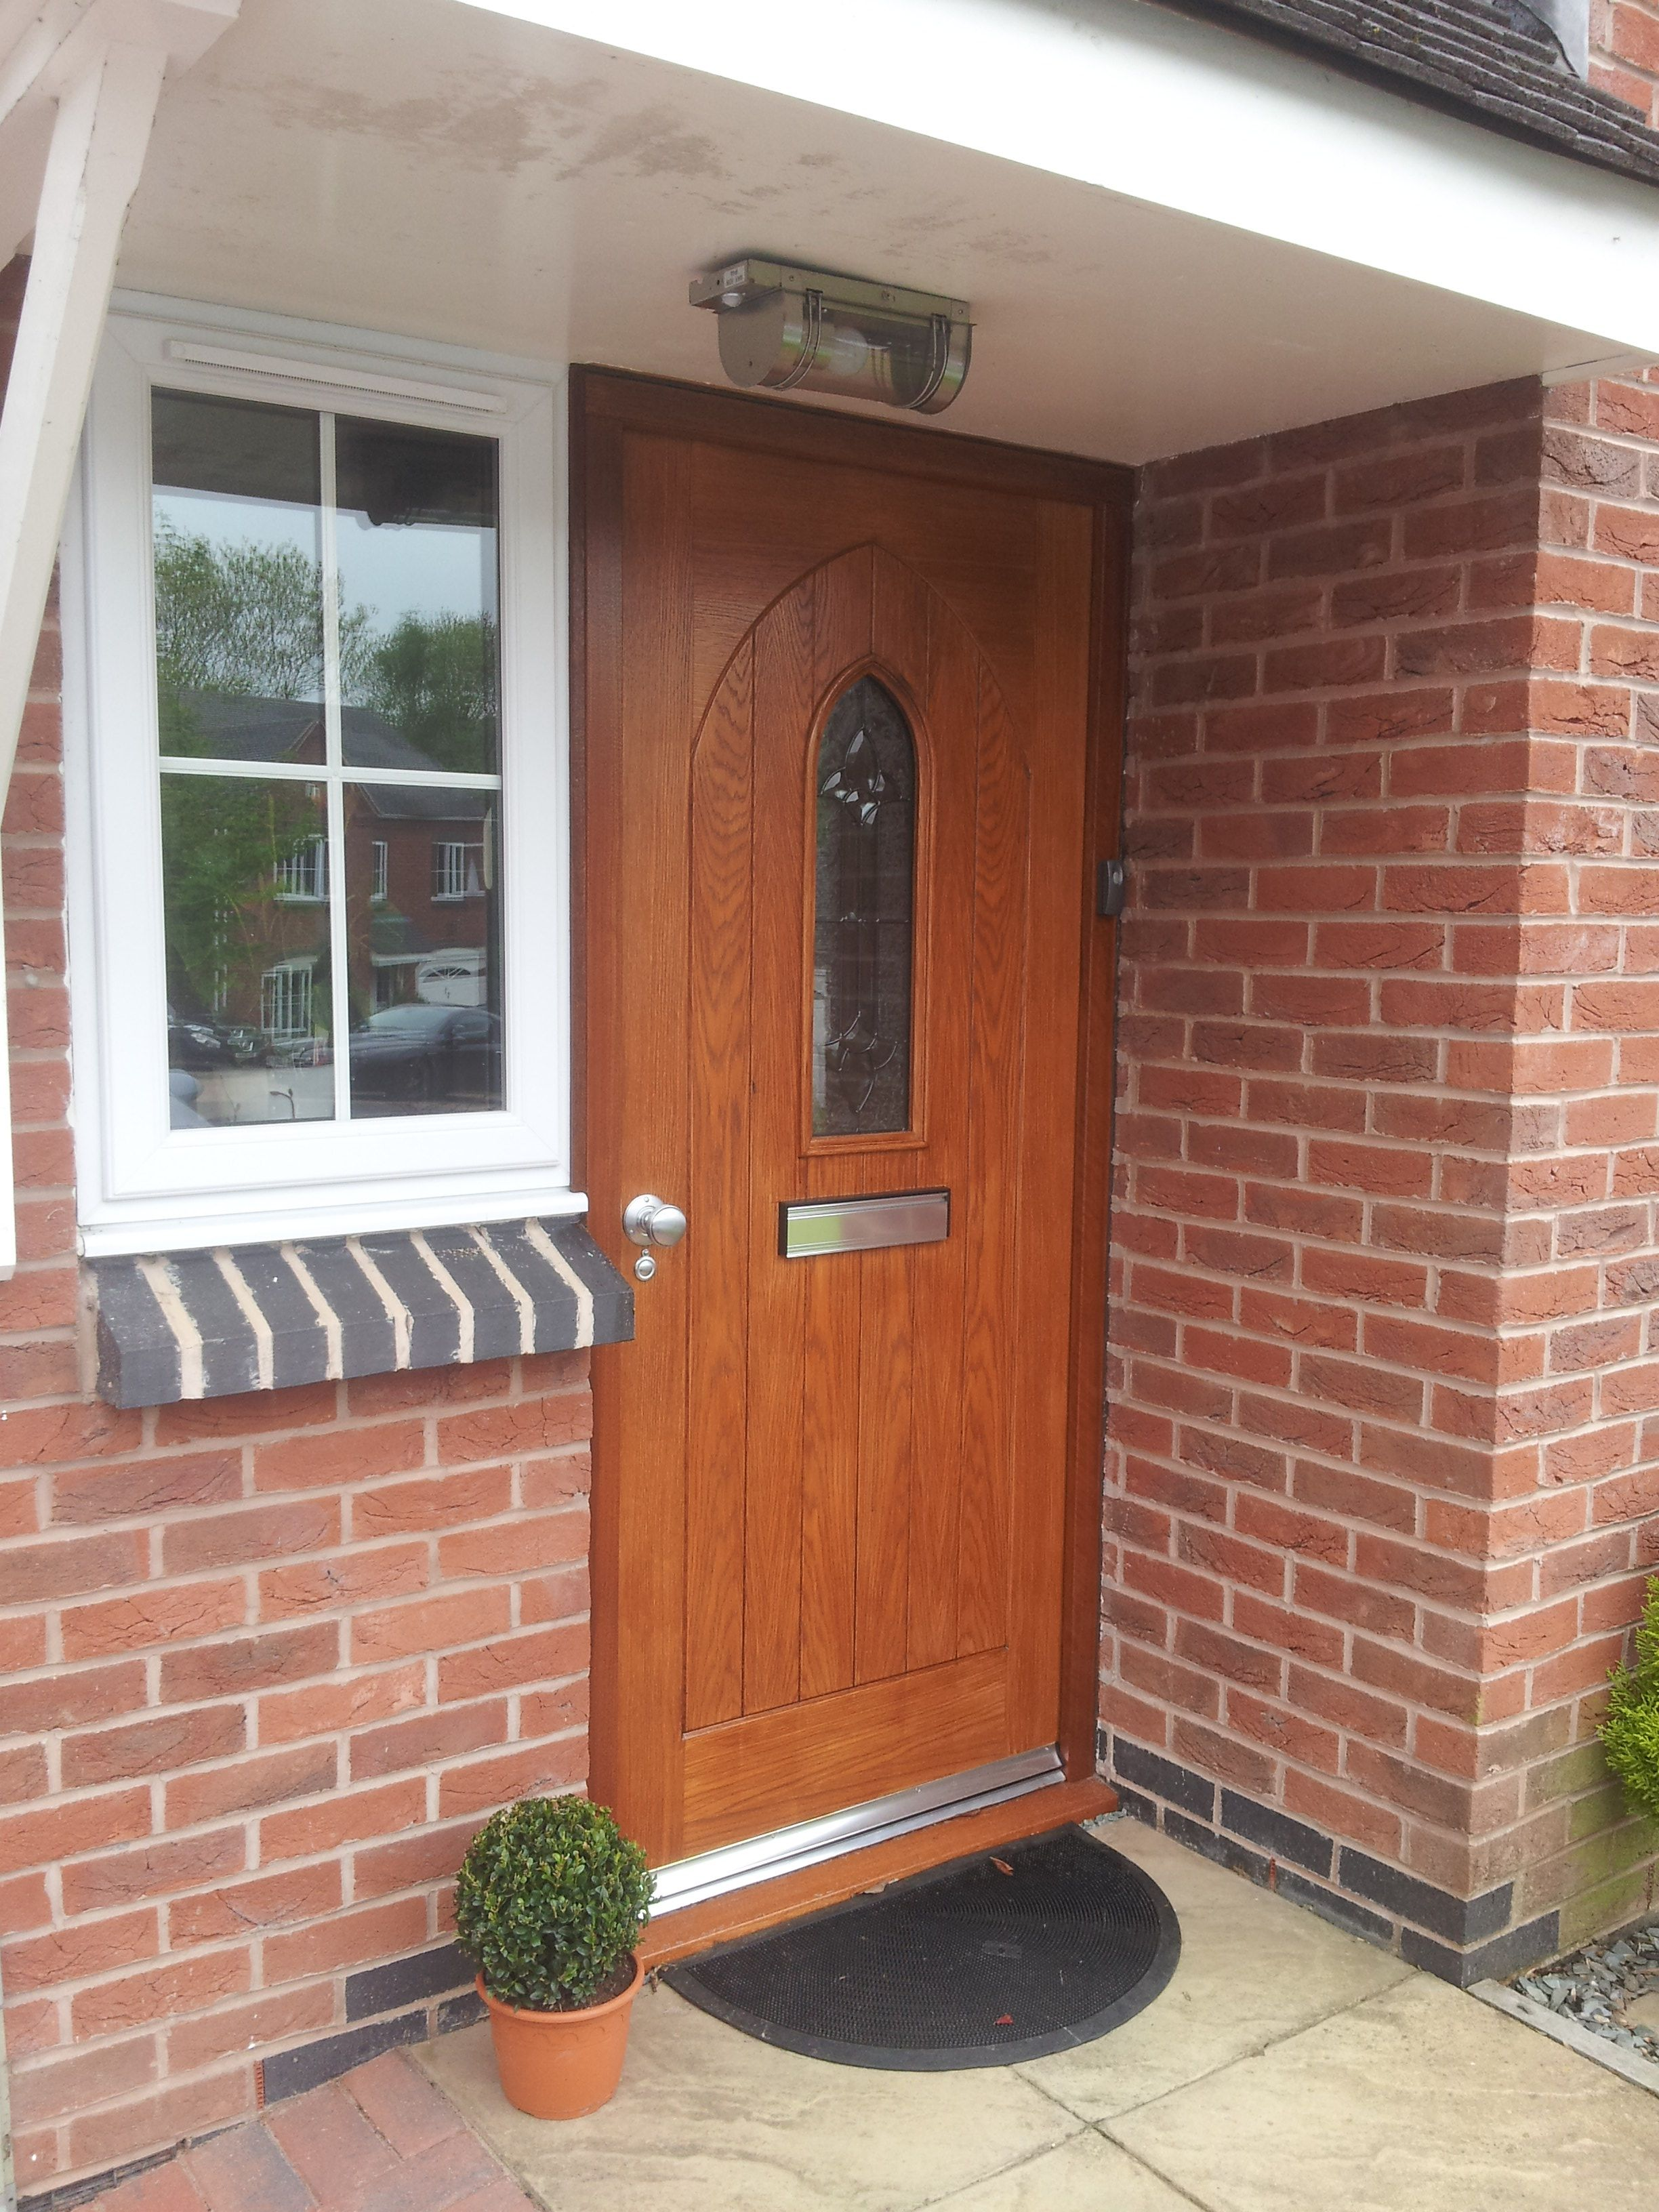 Oak Westminster door finished with Sikkens light oak cetol 7 & Oak Westminster door finished with Sikkens light oak cetol 7 ... Pezcame.Com